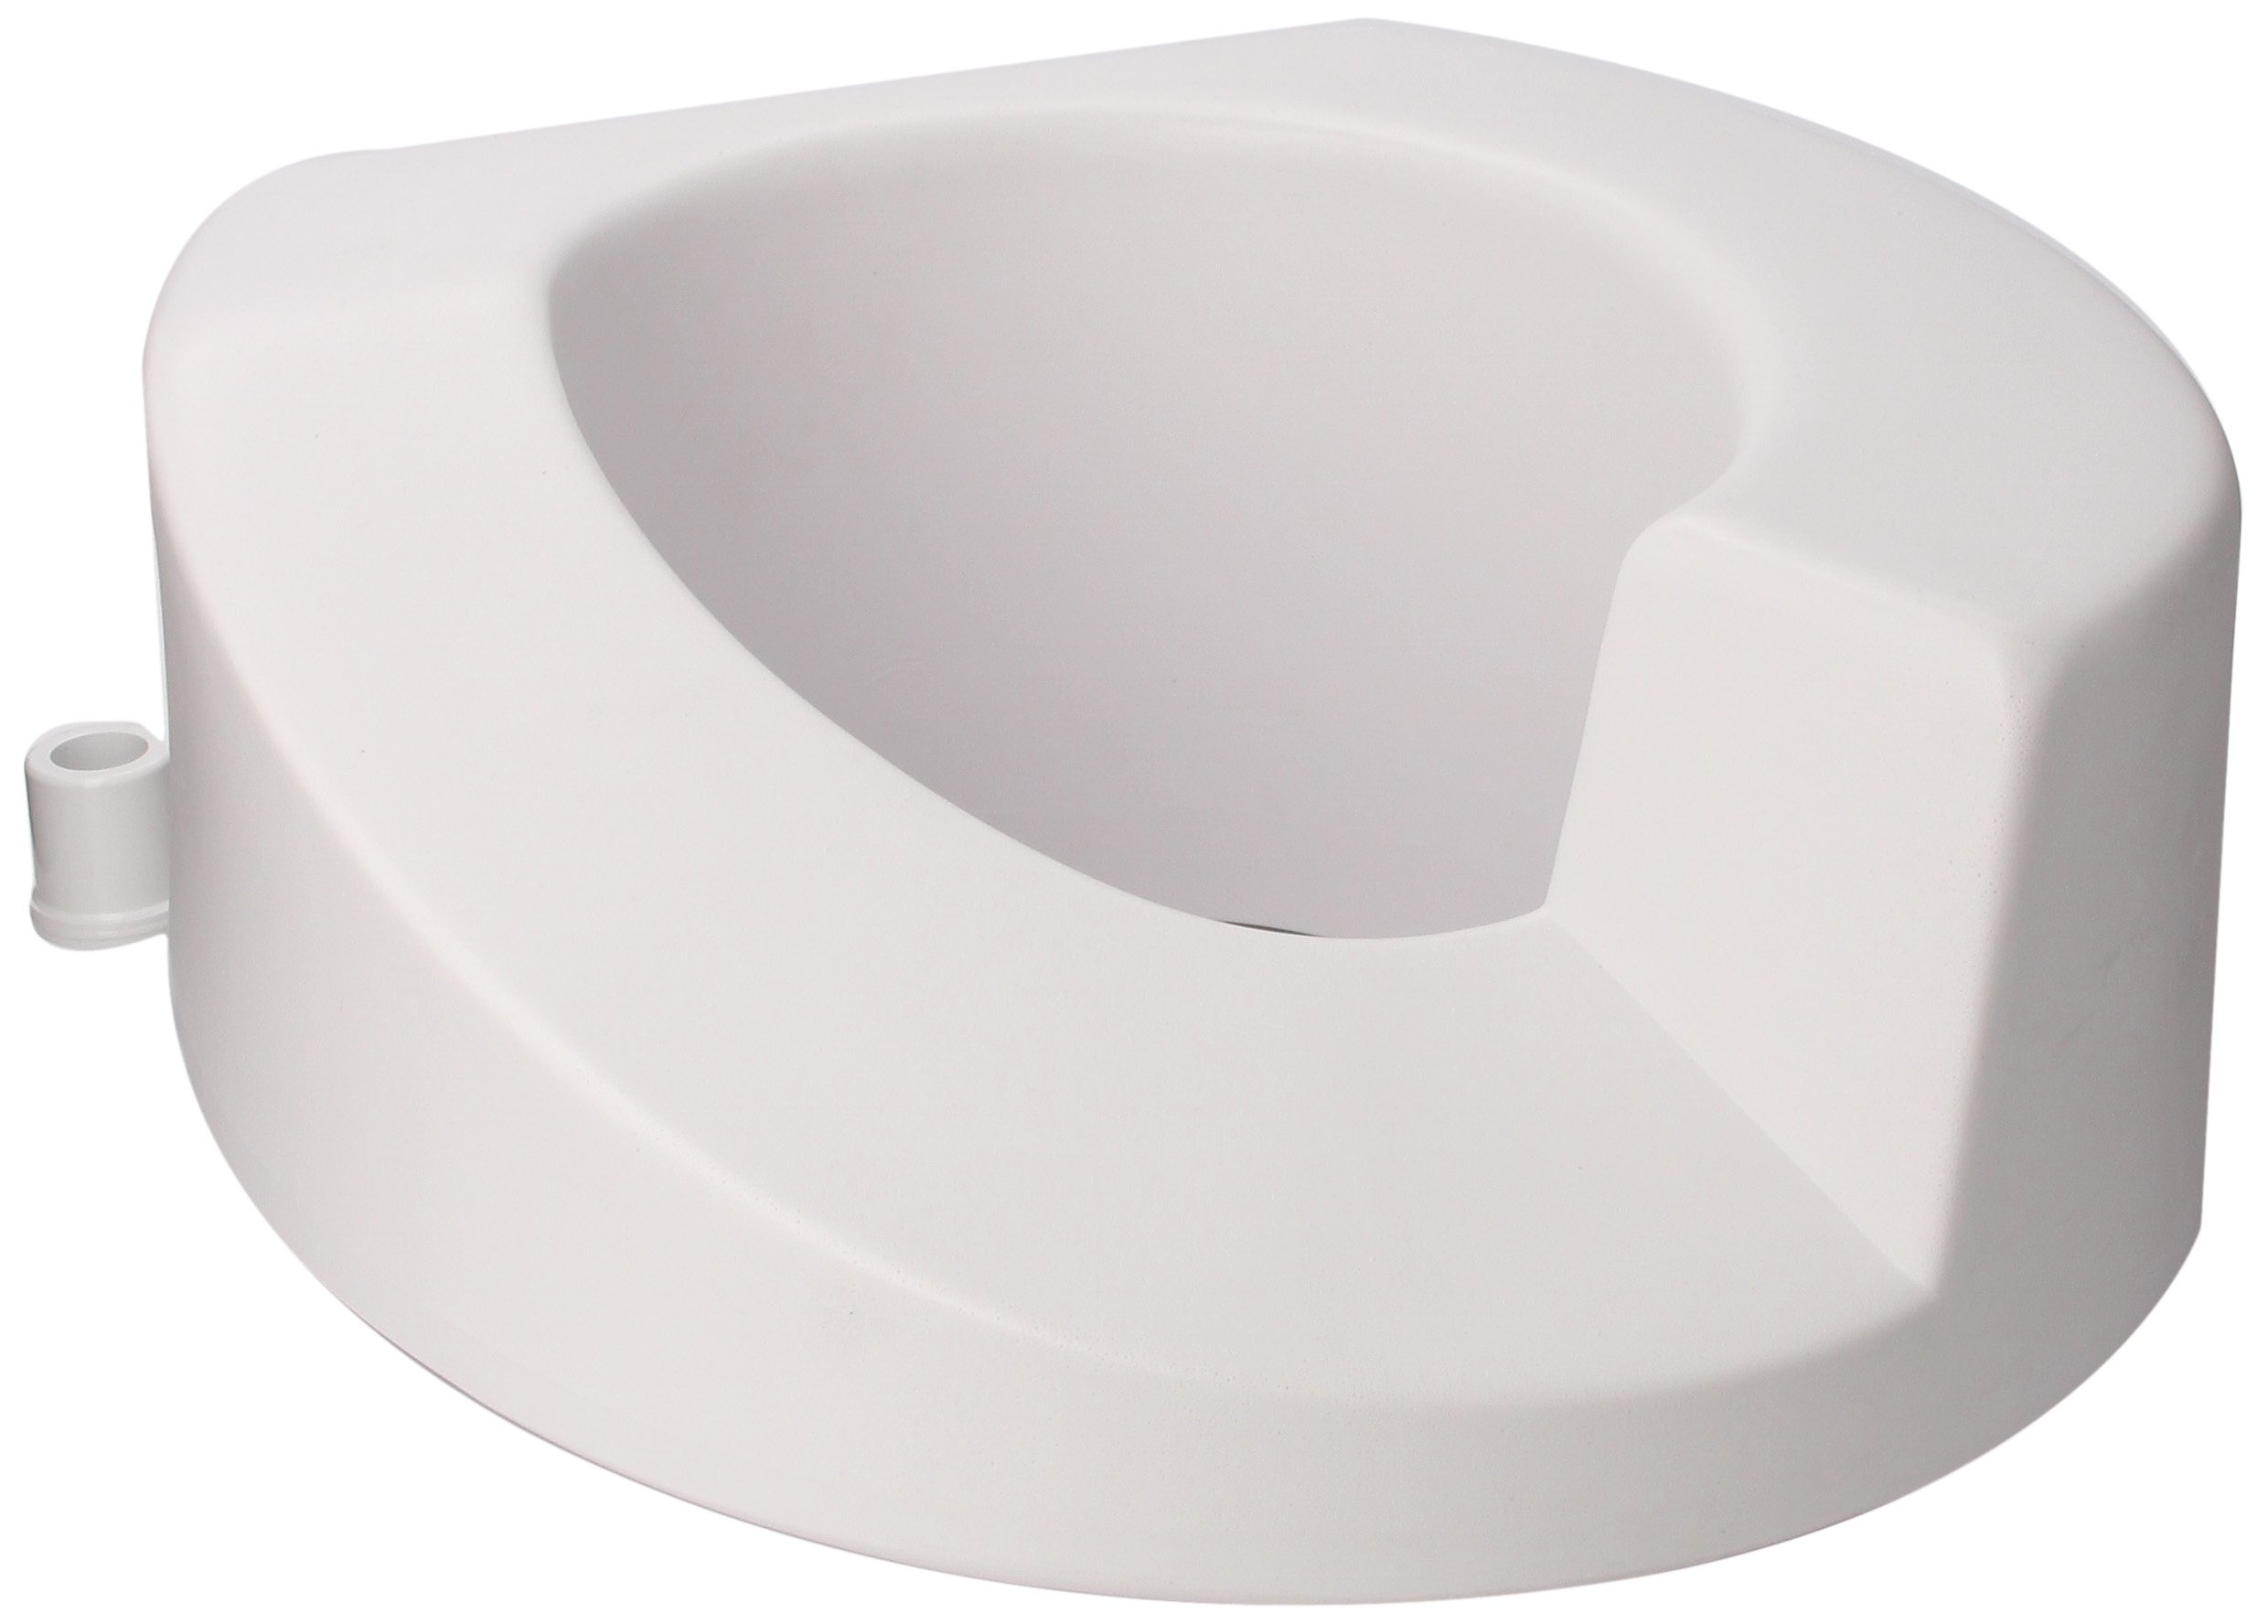 Maddak Right Elongated Elevated Toilet Seat (725921001) by SP Ableware